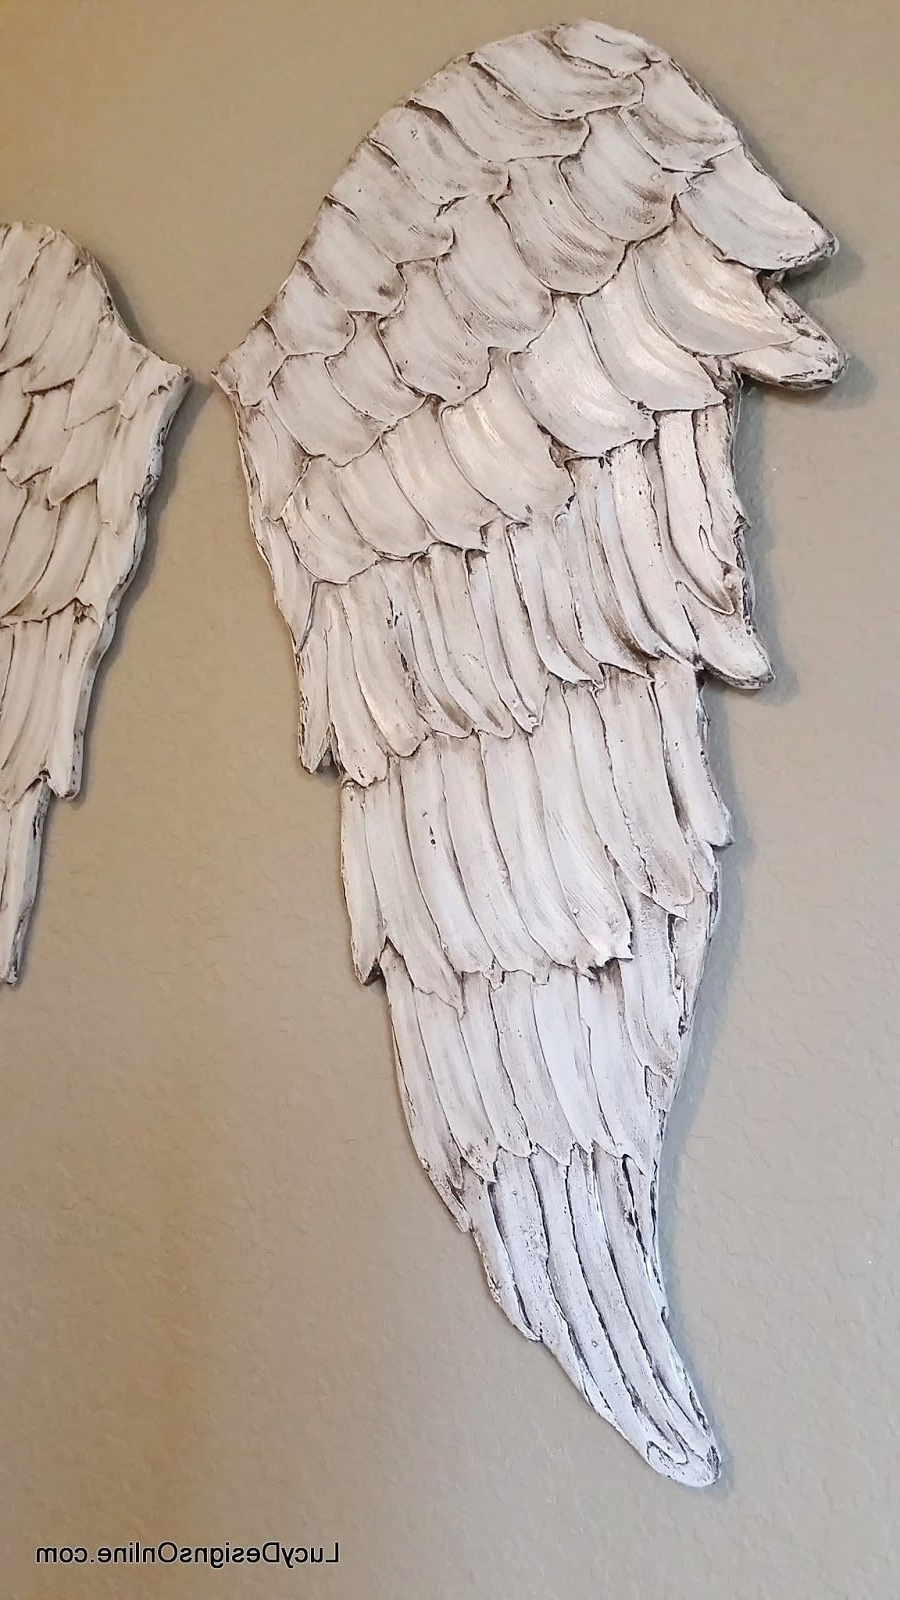 Wood Angel Wings Wall Art, Carved Wood Look, International With Regard To Current Angel Wing Wall Art (View 14 of 15)